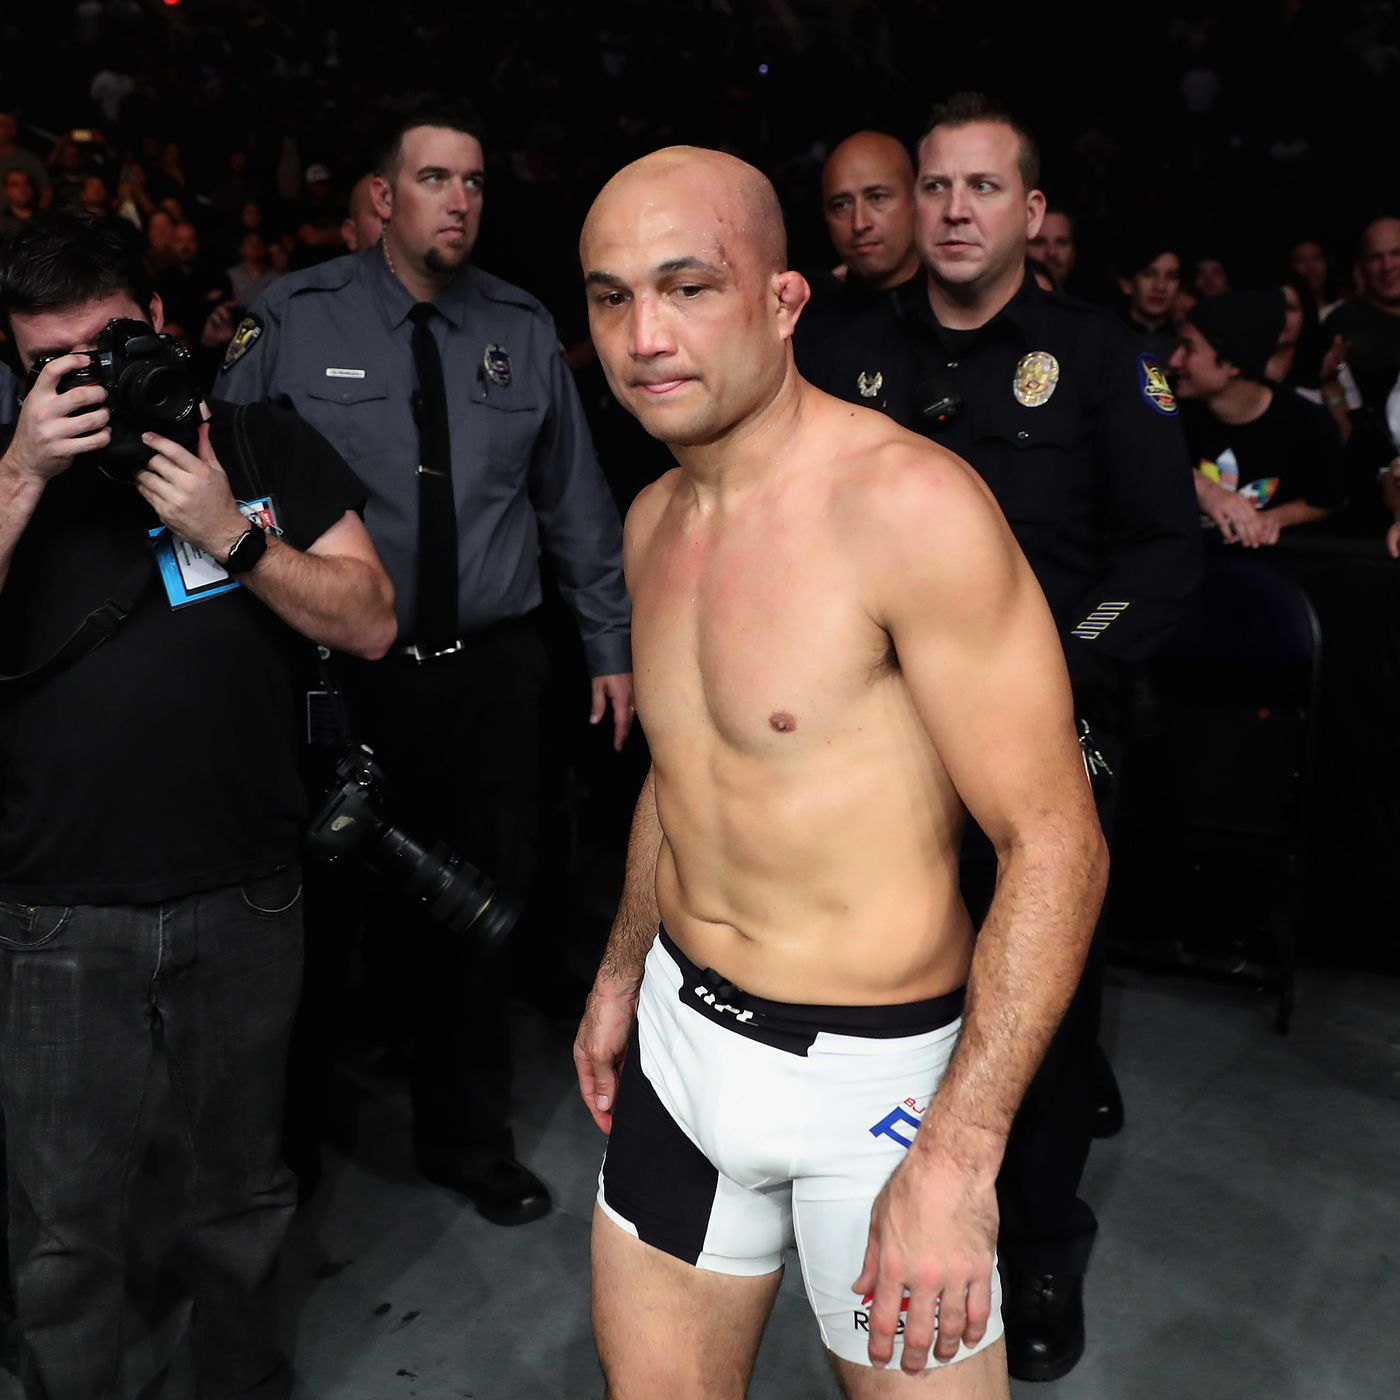 Ufc S B J Penn Accused Of Domestic And Sexual Abuse By Partner